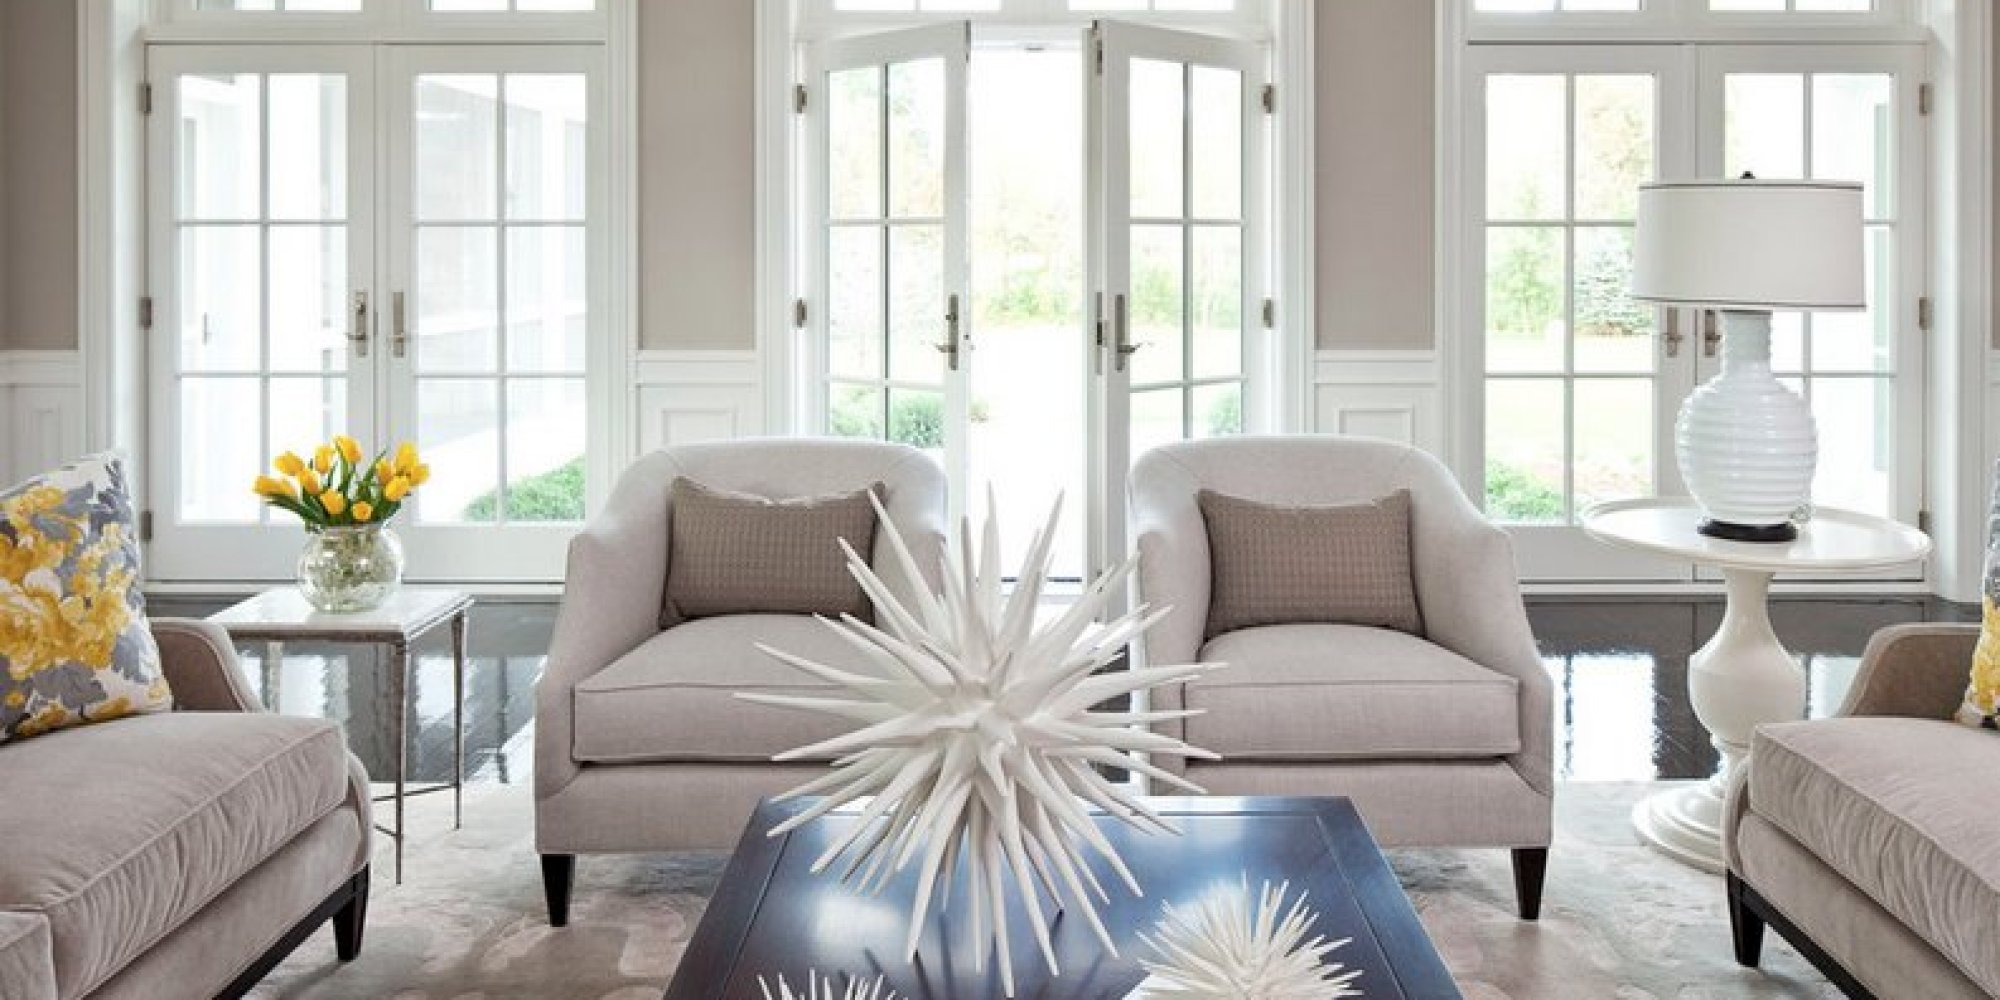 Neutrals Colors the 8 best neutral paint colors that'll work in any home, no